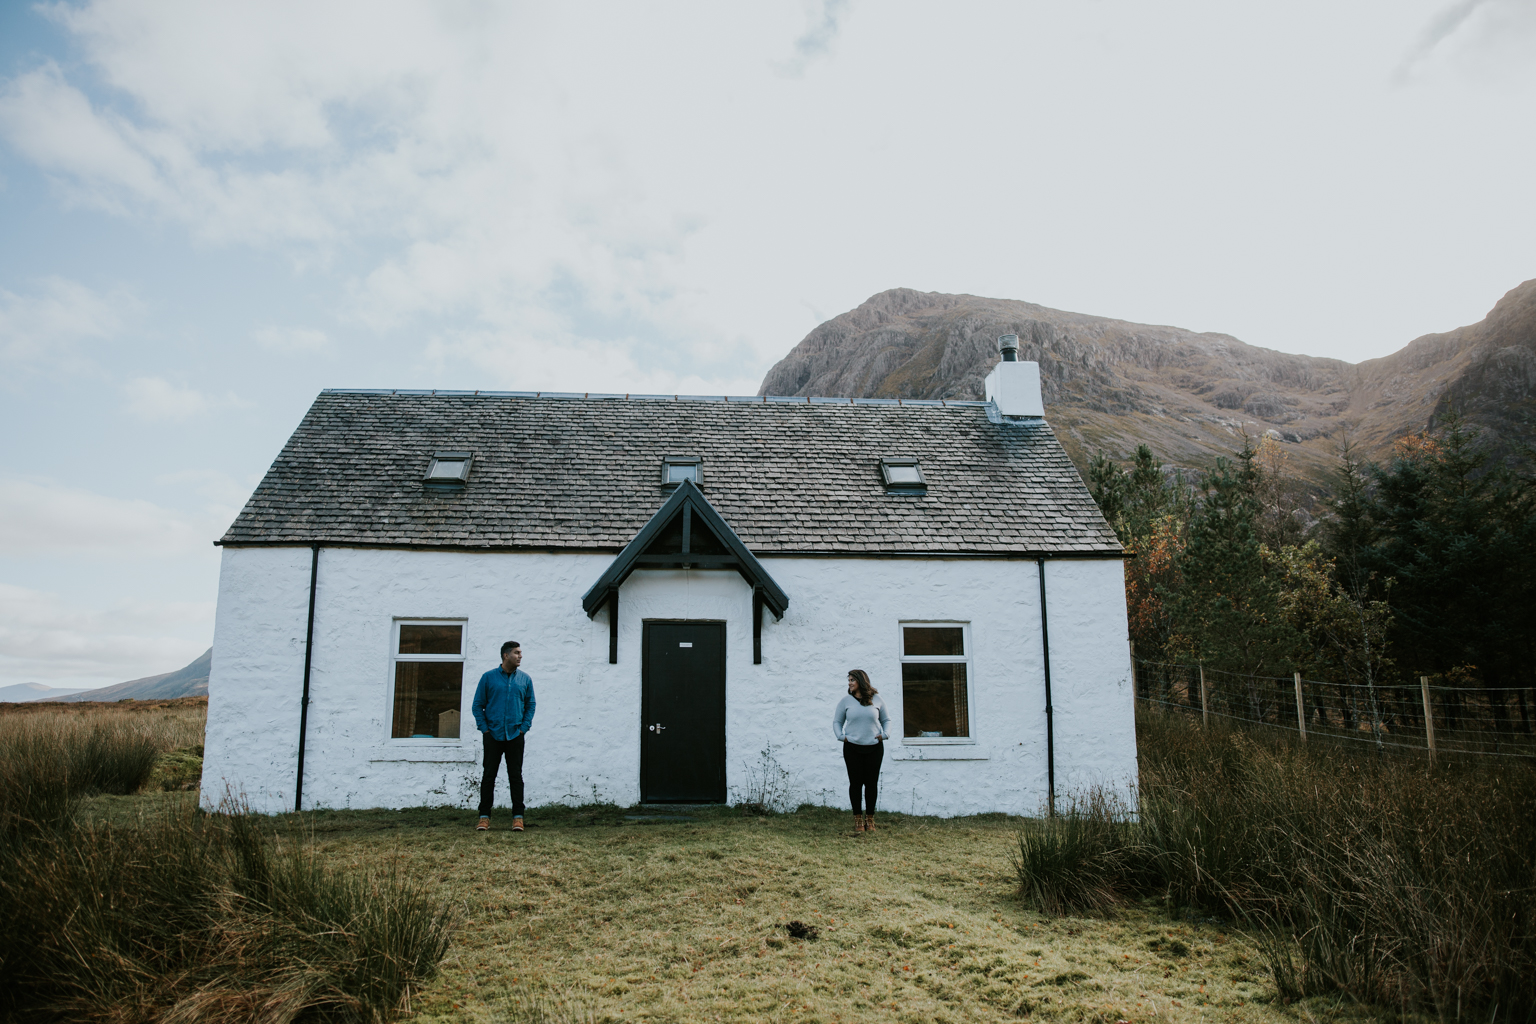 Couple is standing next to the white house in Glencoe, Scotland